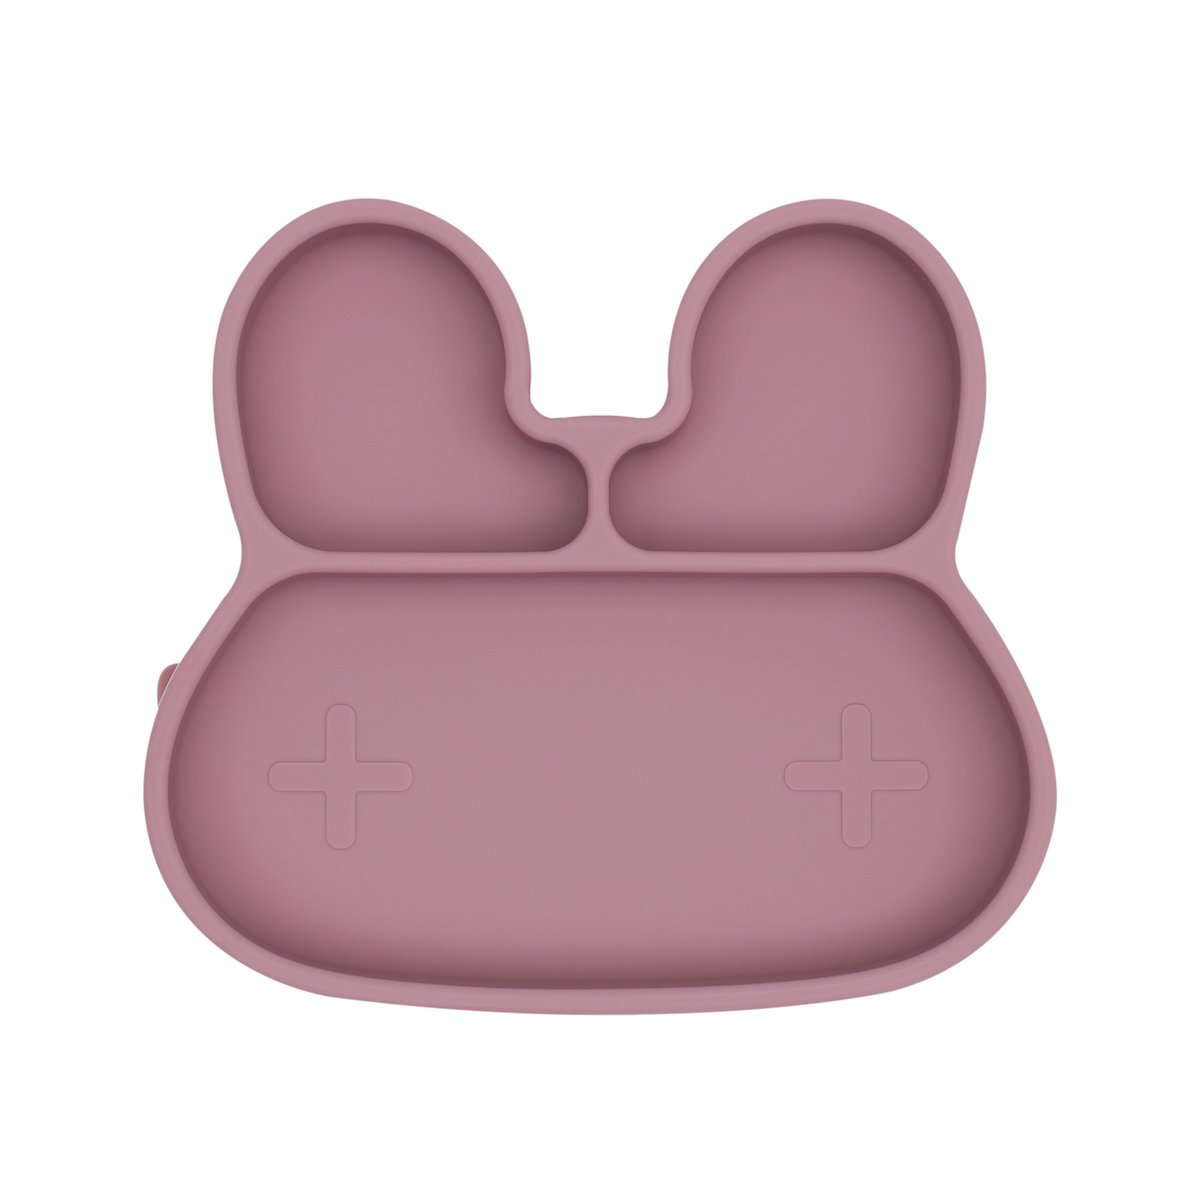 We Might be Tiny - Assiette en silicone Lapin